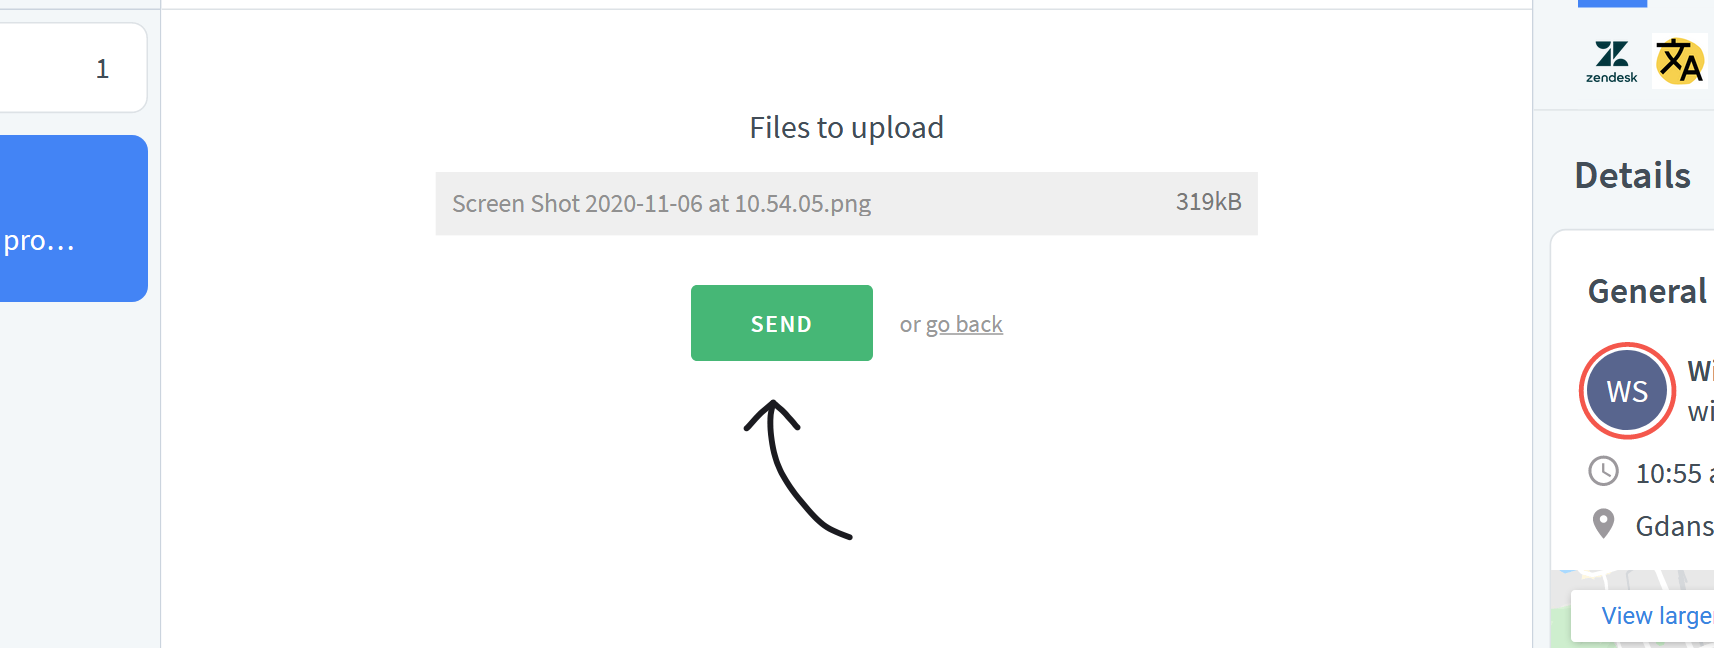 Click on send to share files over LiveChat